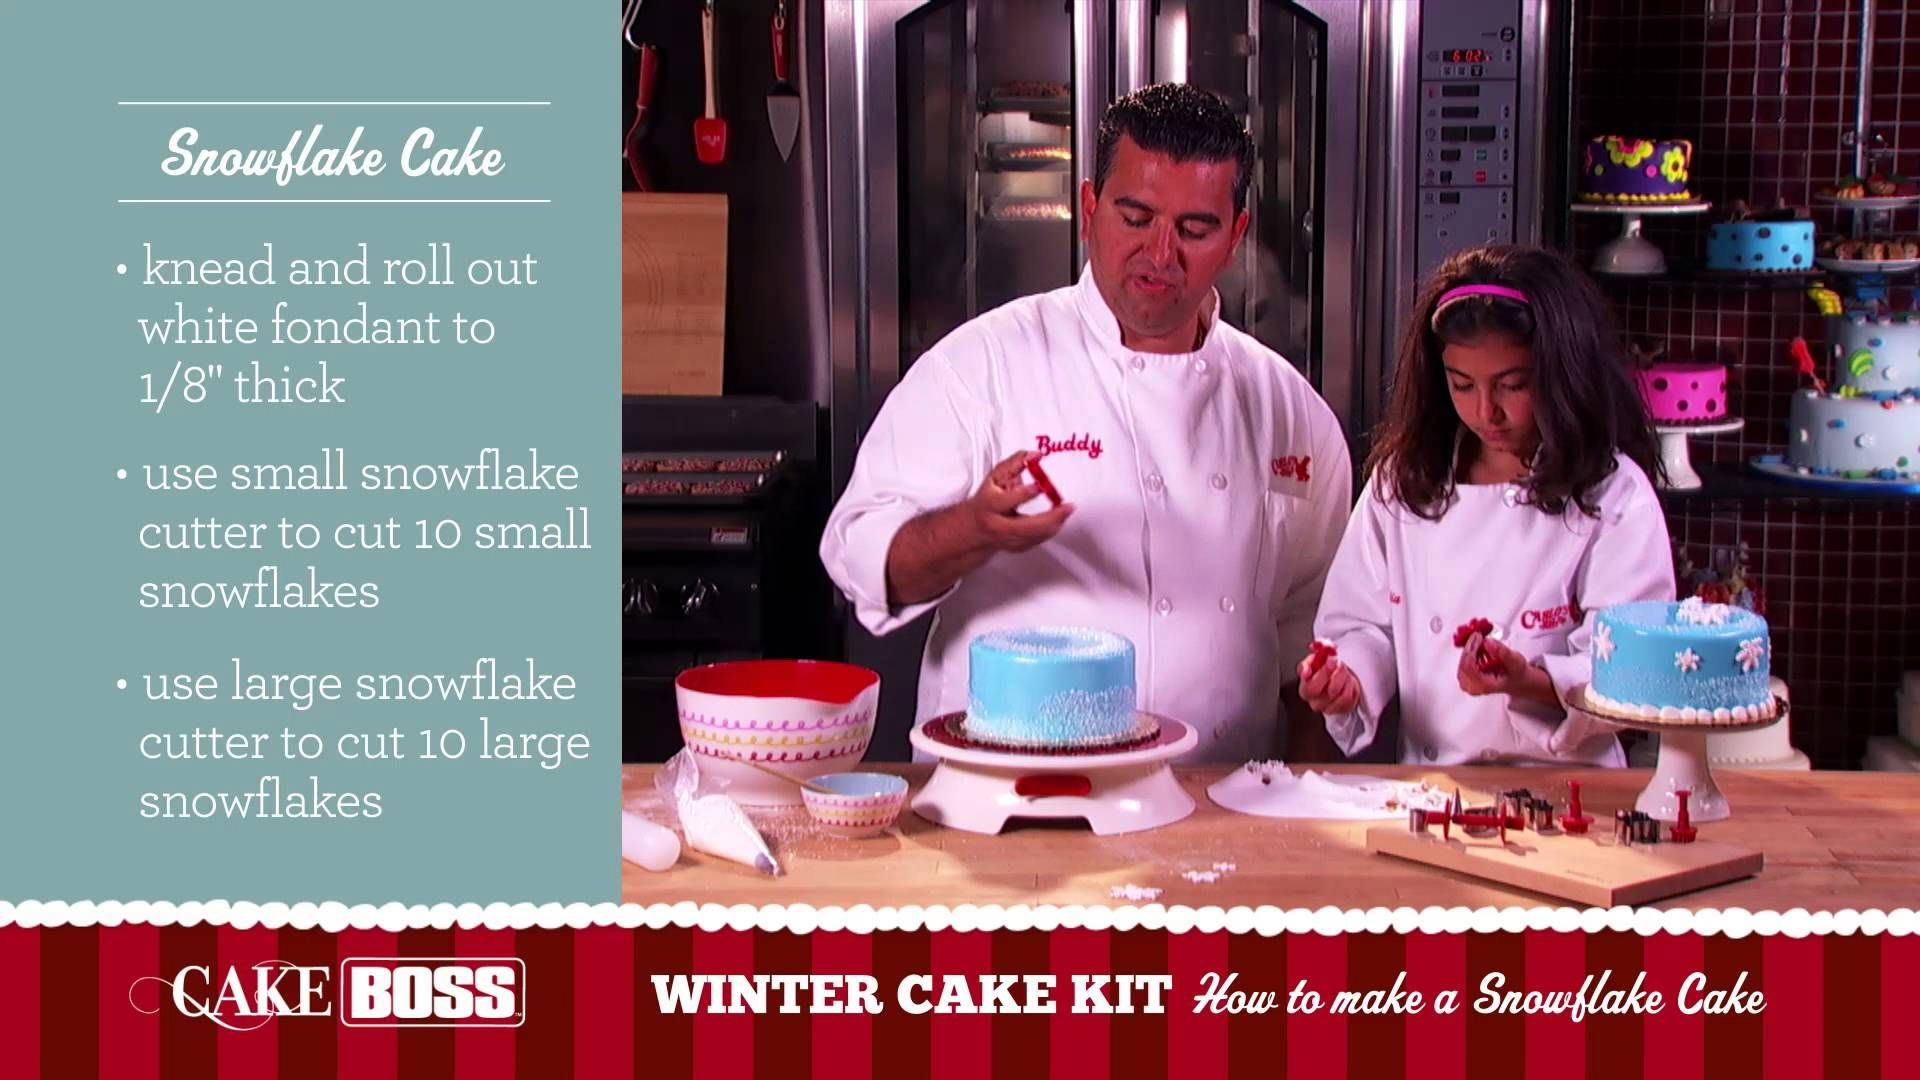 And Now Here Is A Cake That Looks Just Like Betty White Cake Boss Cake Boss Buddy Cake Boss Recipes